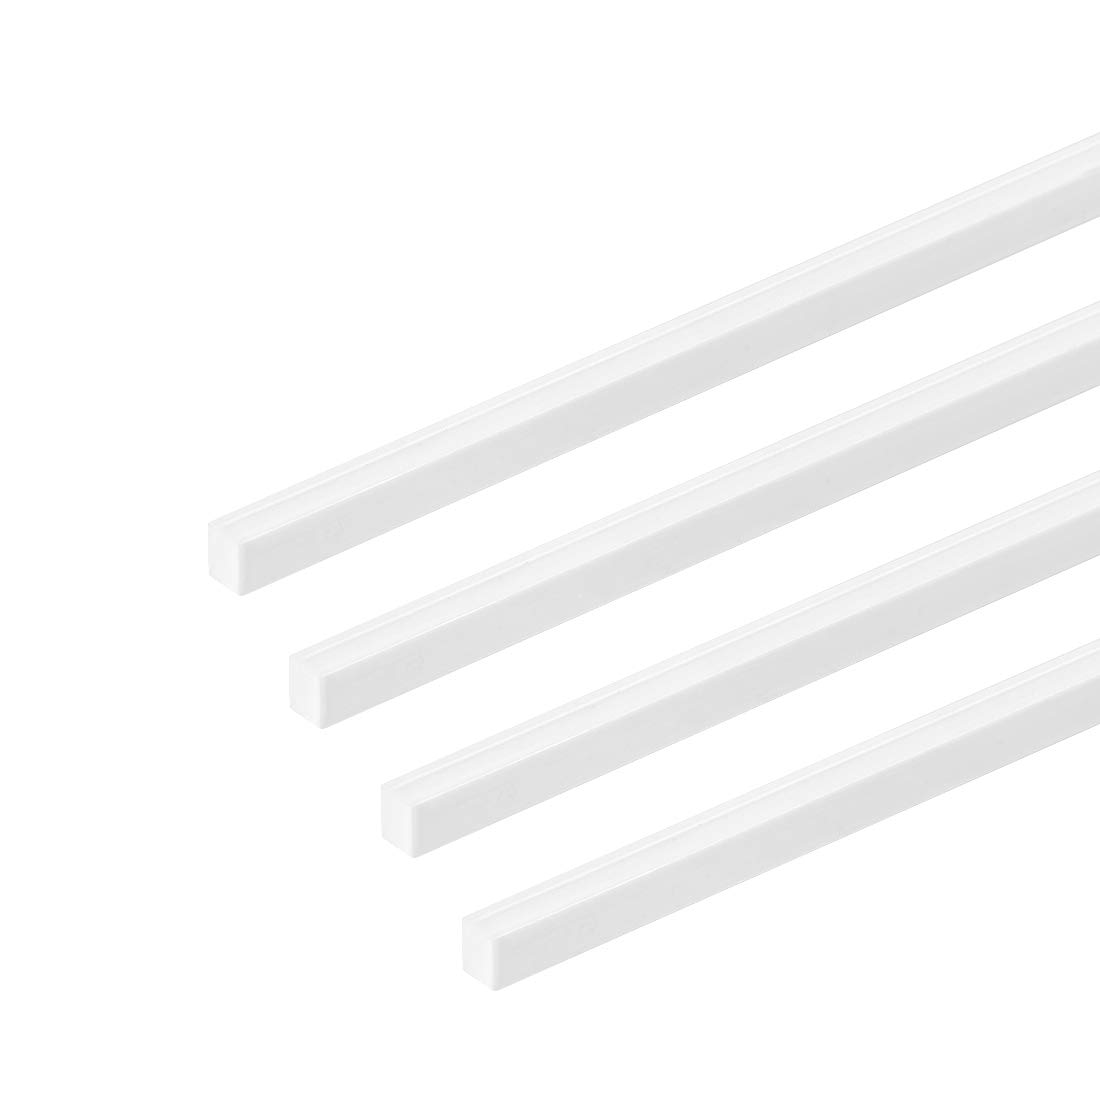 sourcing map 4mm /× 4mm /× 20 ABS Plastic Square Bar Rod for Architectural Model Making DIY White 4 pcs